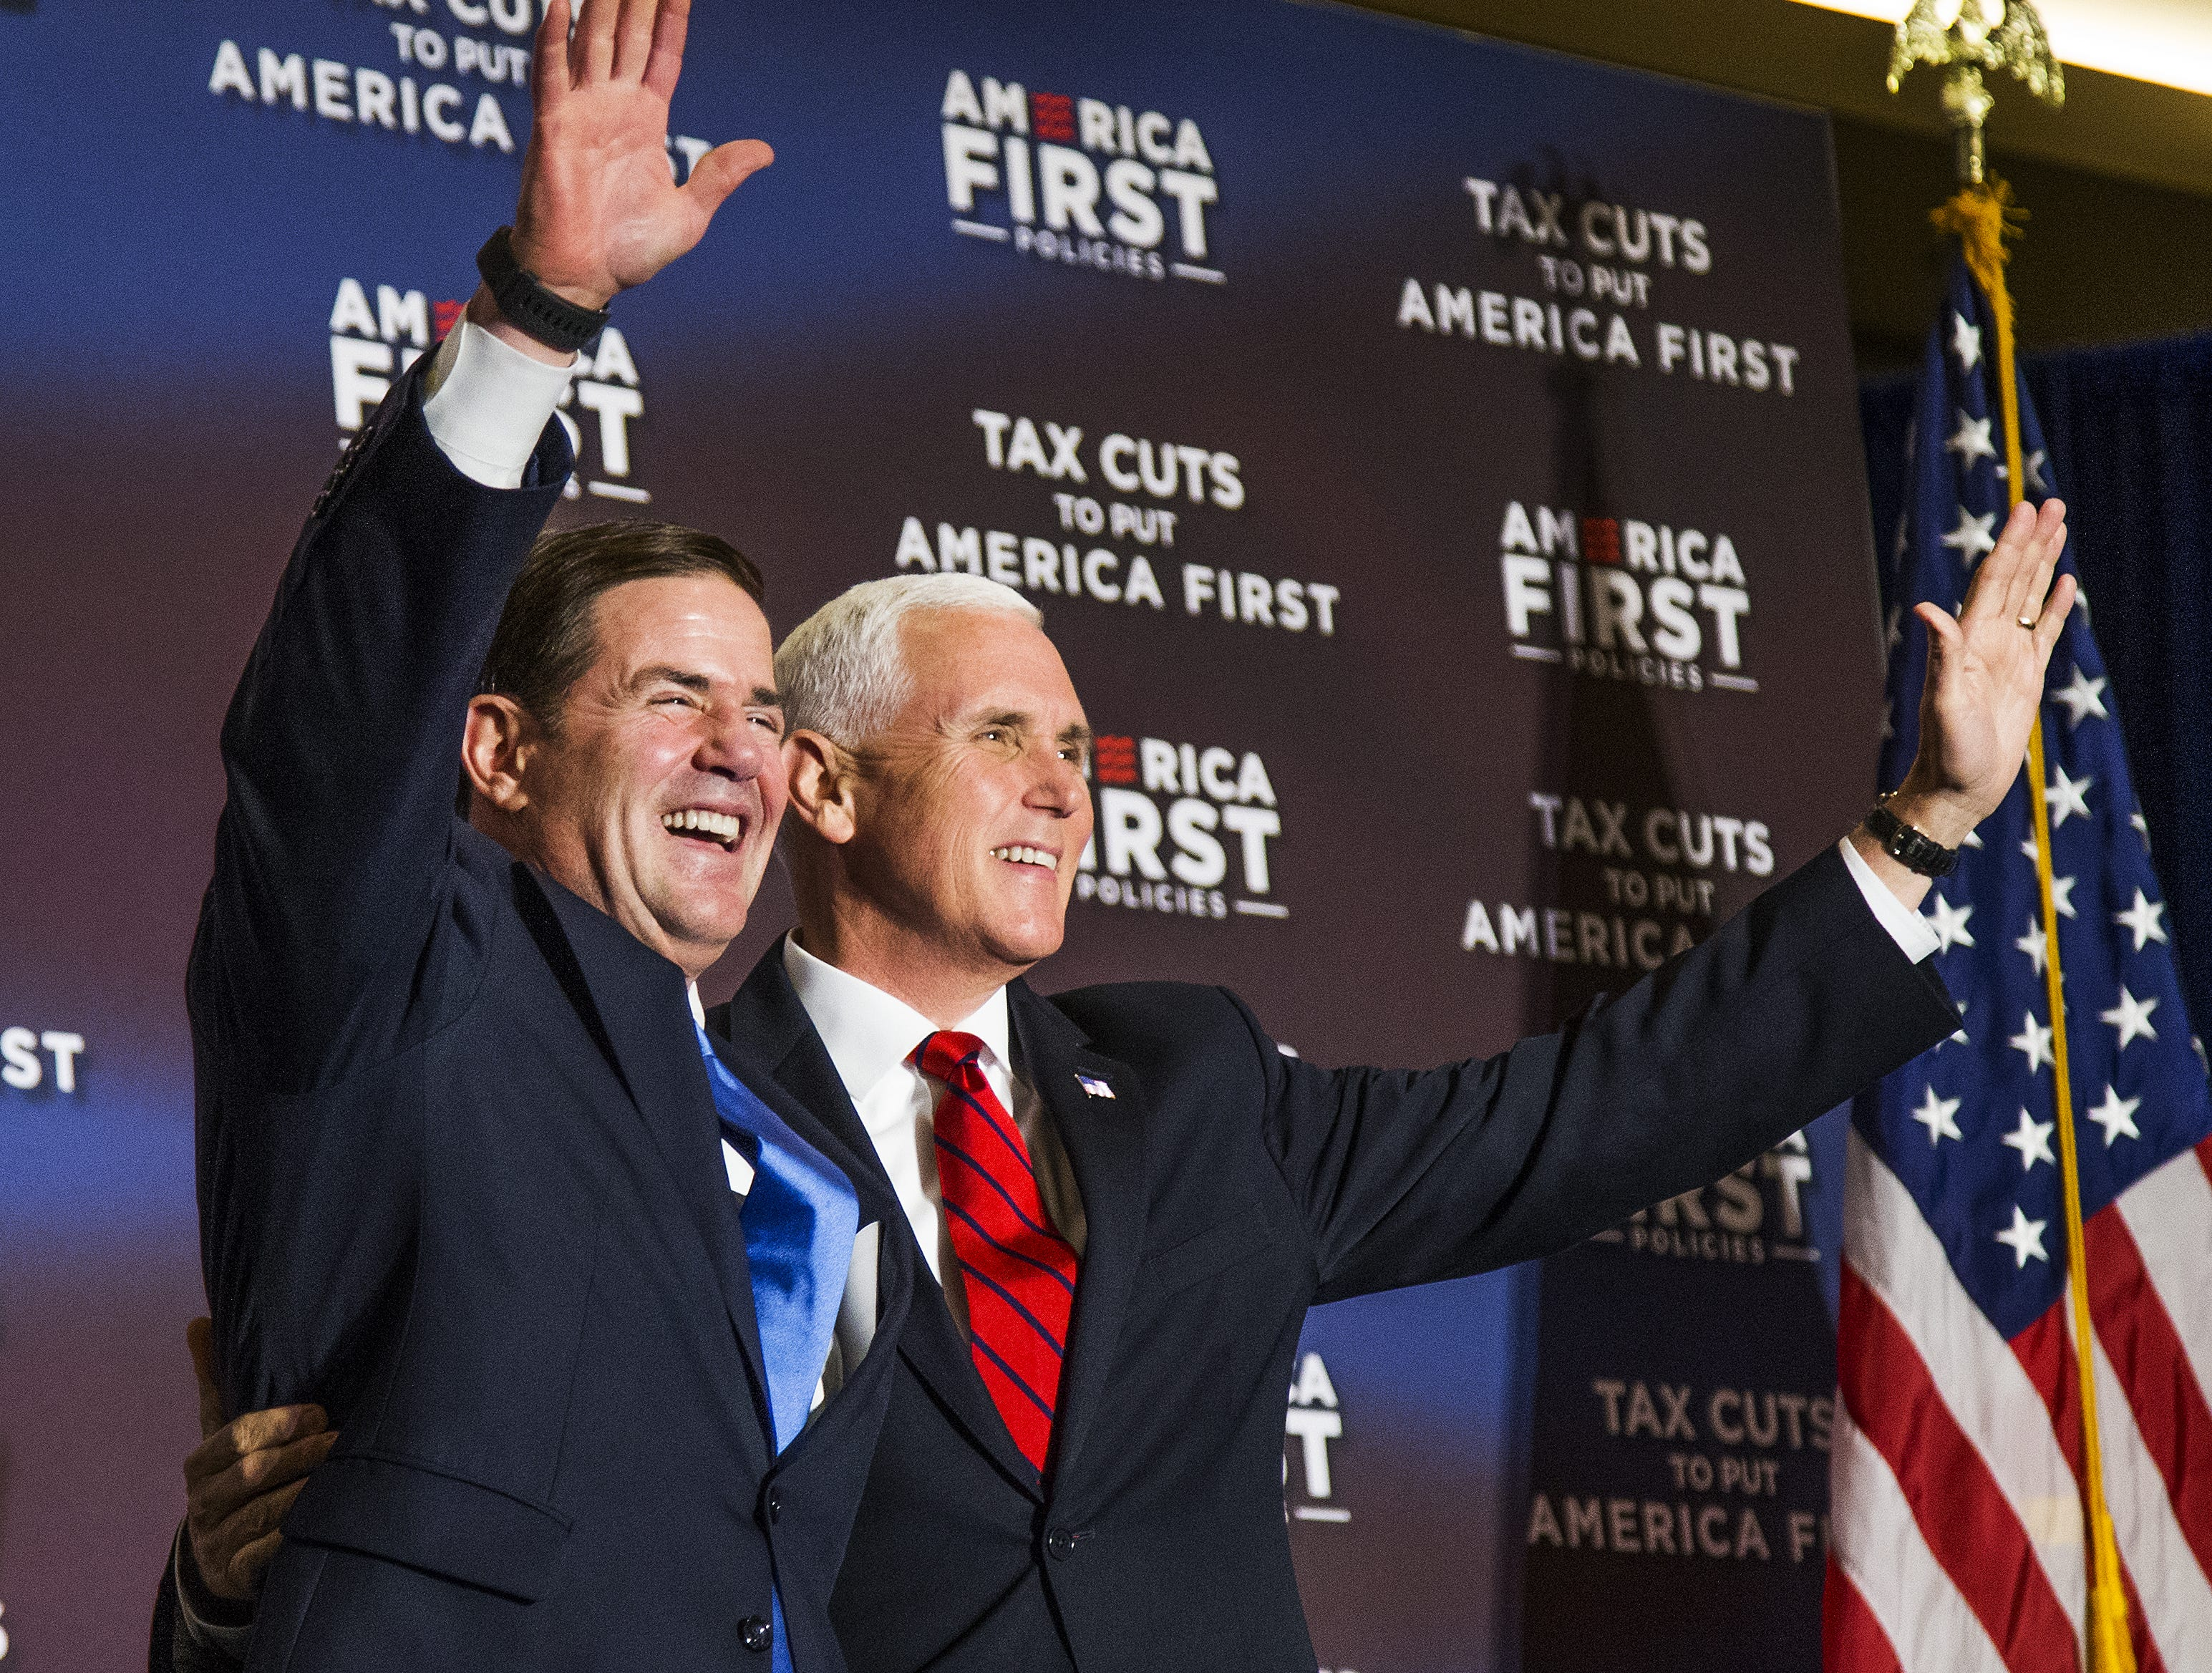 Gov. Doug Ducey welcomes Vice President Mike Pence on May 1, 2018, to the stage at the America First Policies event at the Phoenix Marriott Resort Tempe at The Buttes.